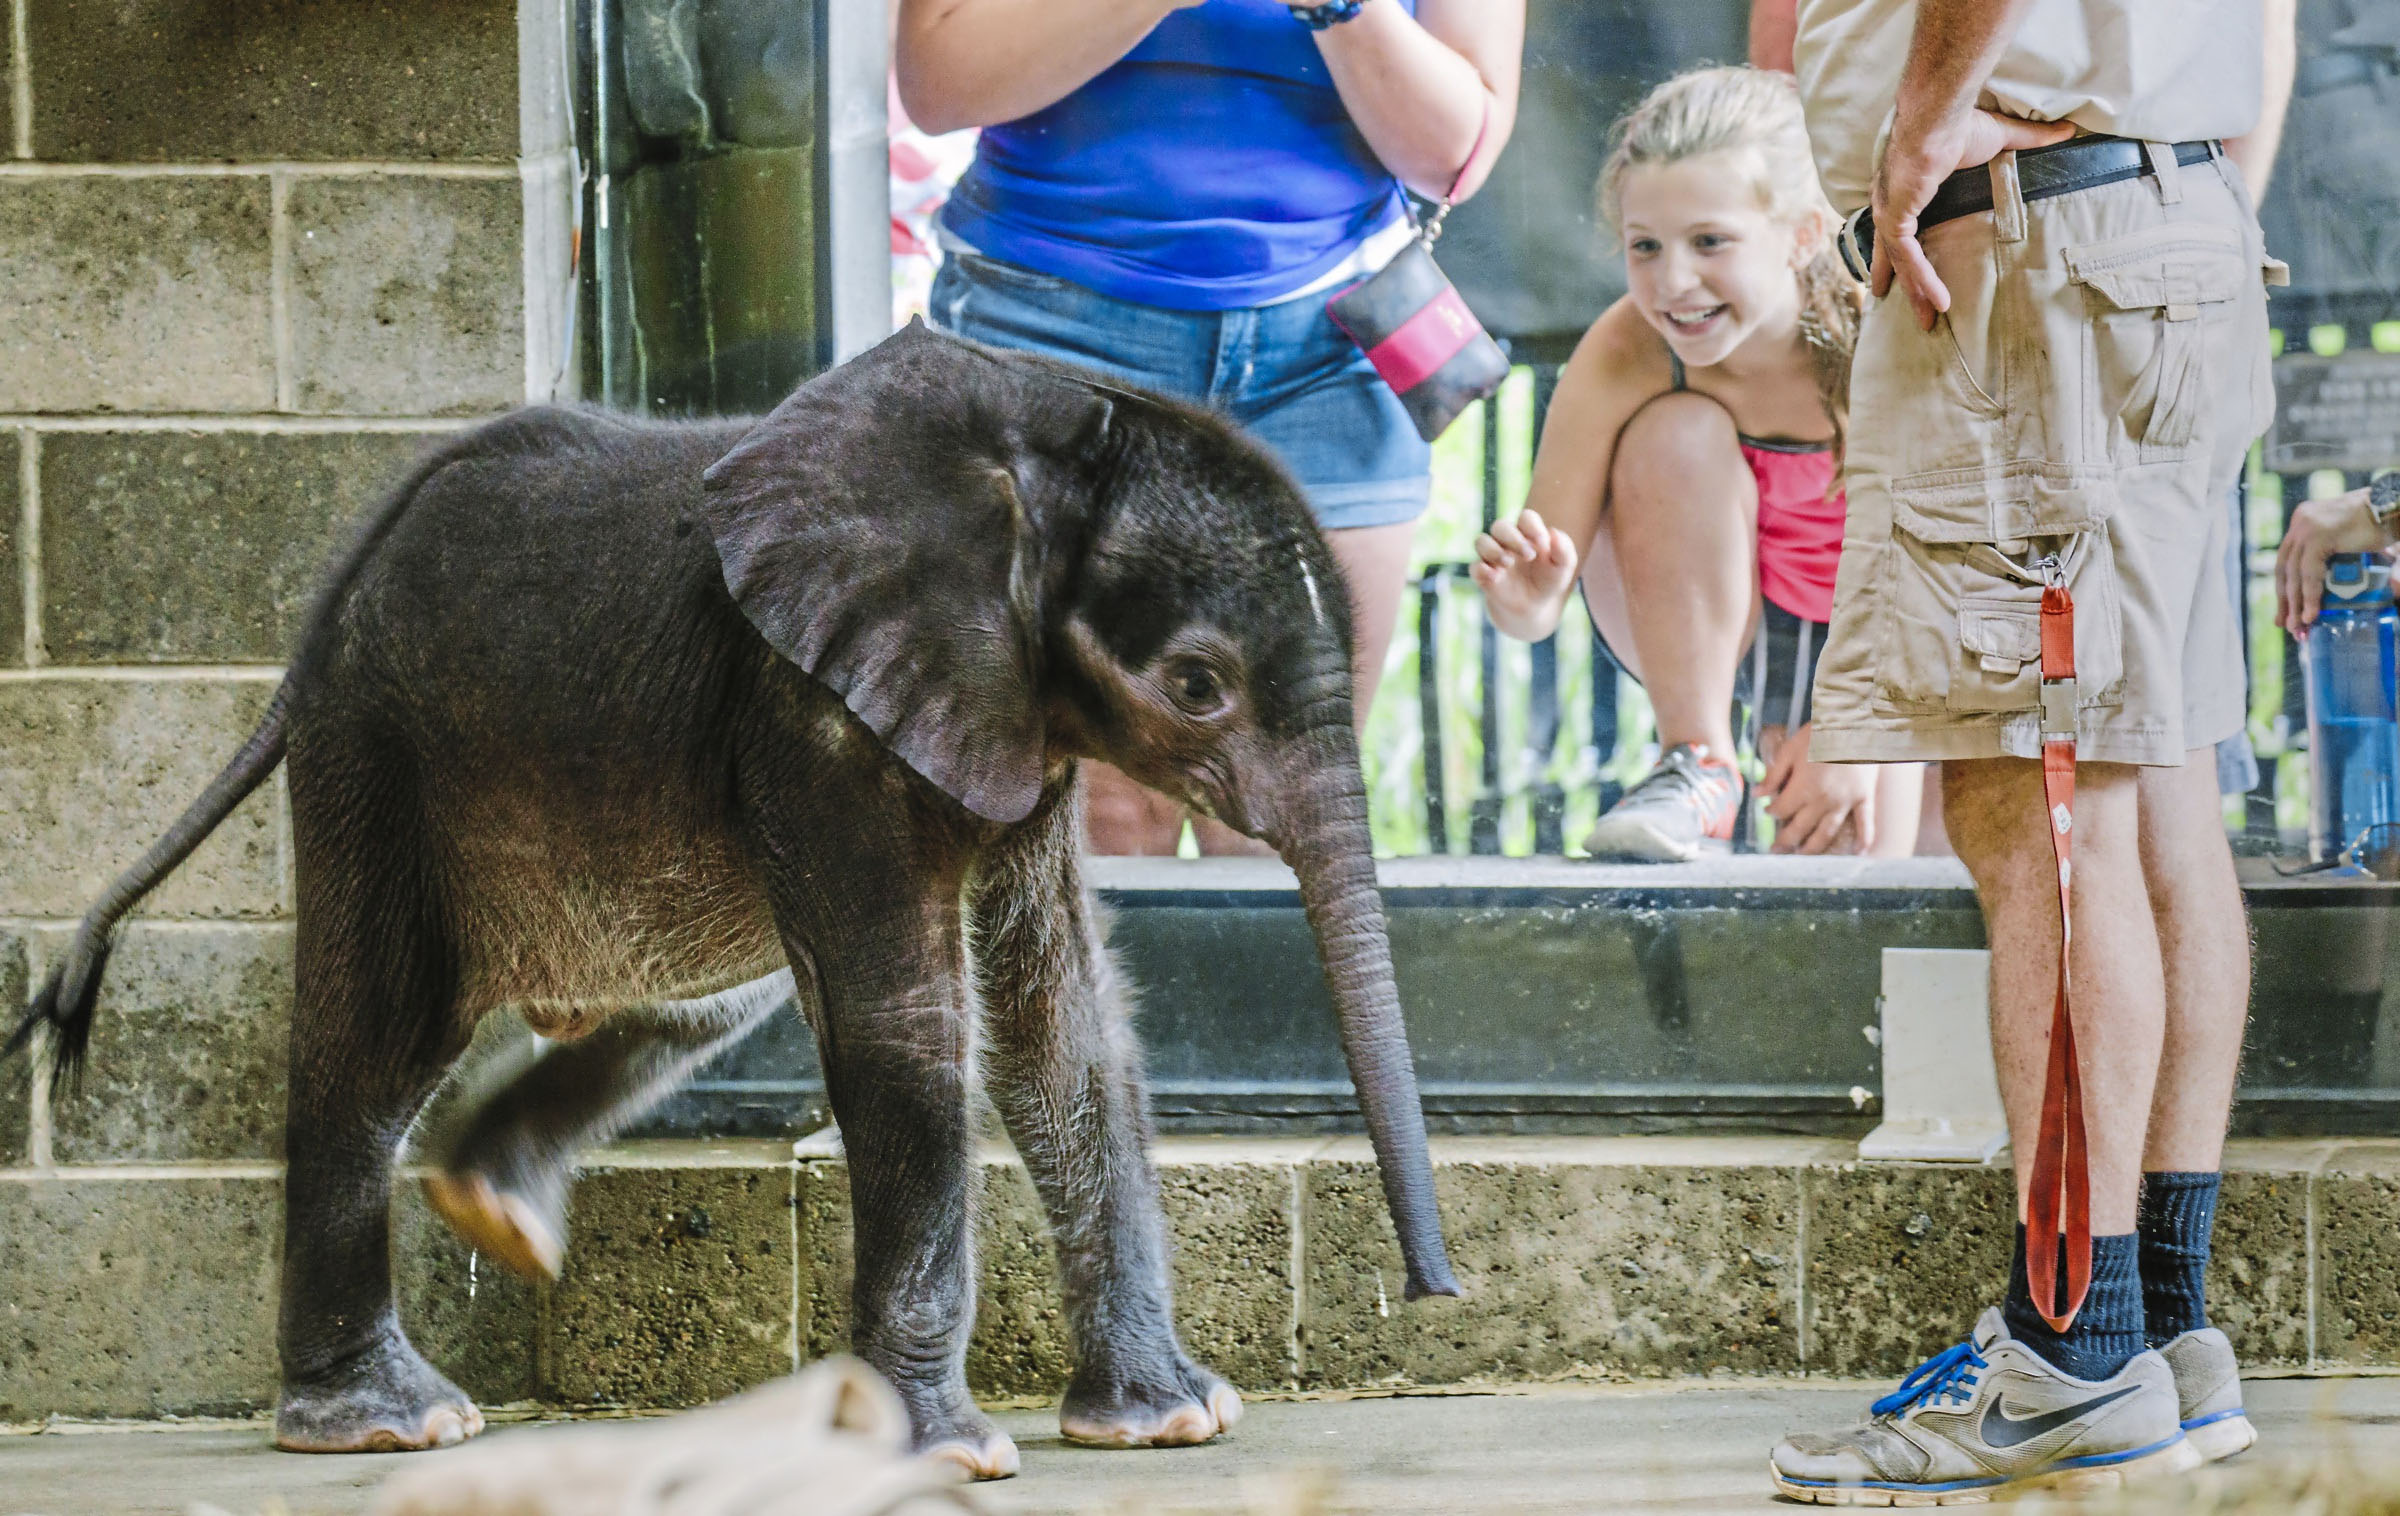 PAPIT104 BABY ELEPHANT DIES-6 The Pittsburgh Zoo's 4-week-old baby elephant meets the public for the first time at the elephant family room windows in Highland Park on July 7, 2017. The elephant died Aug. 30.